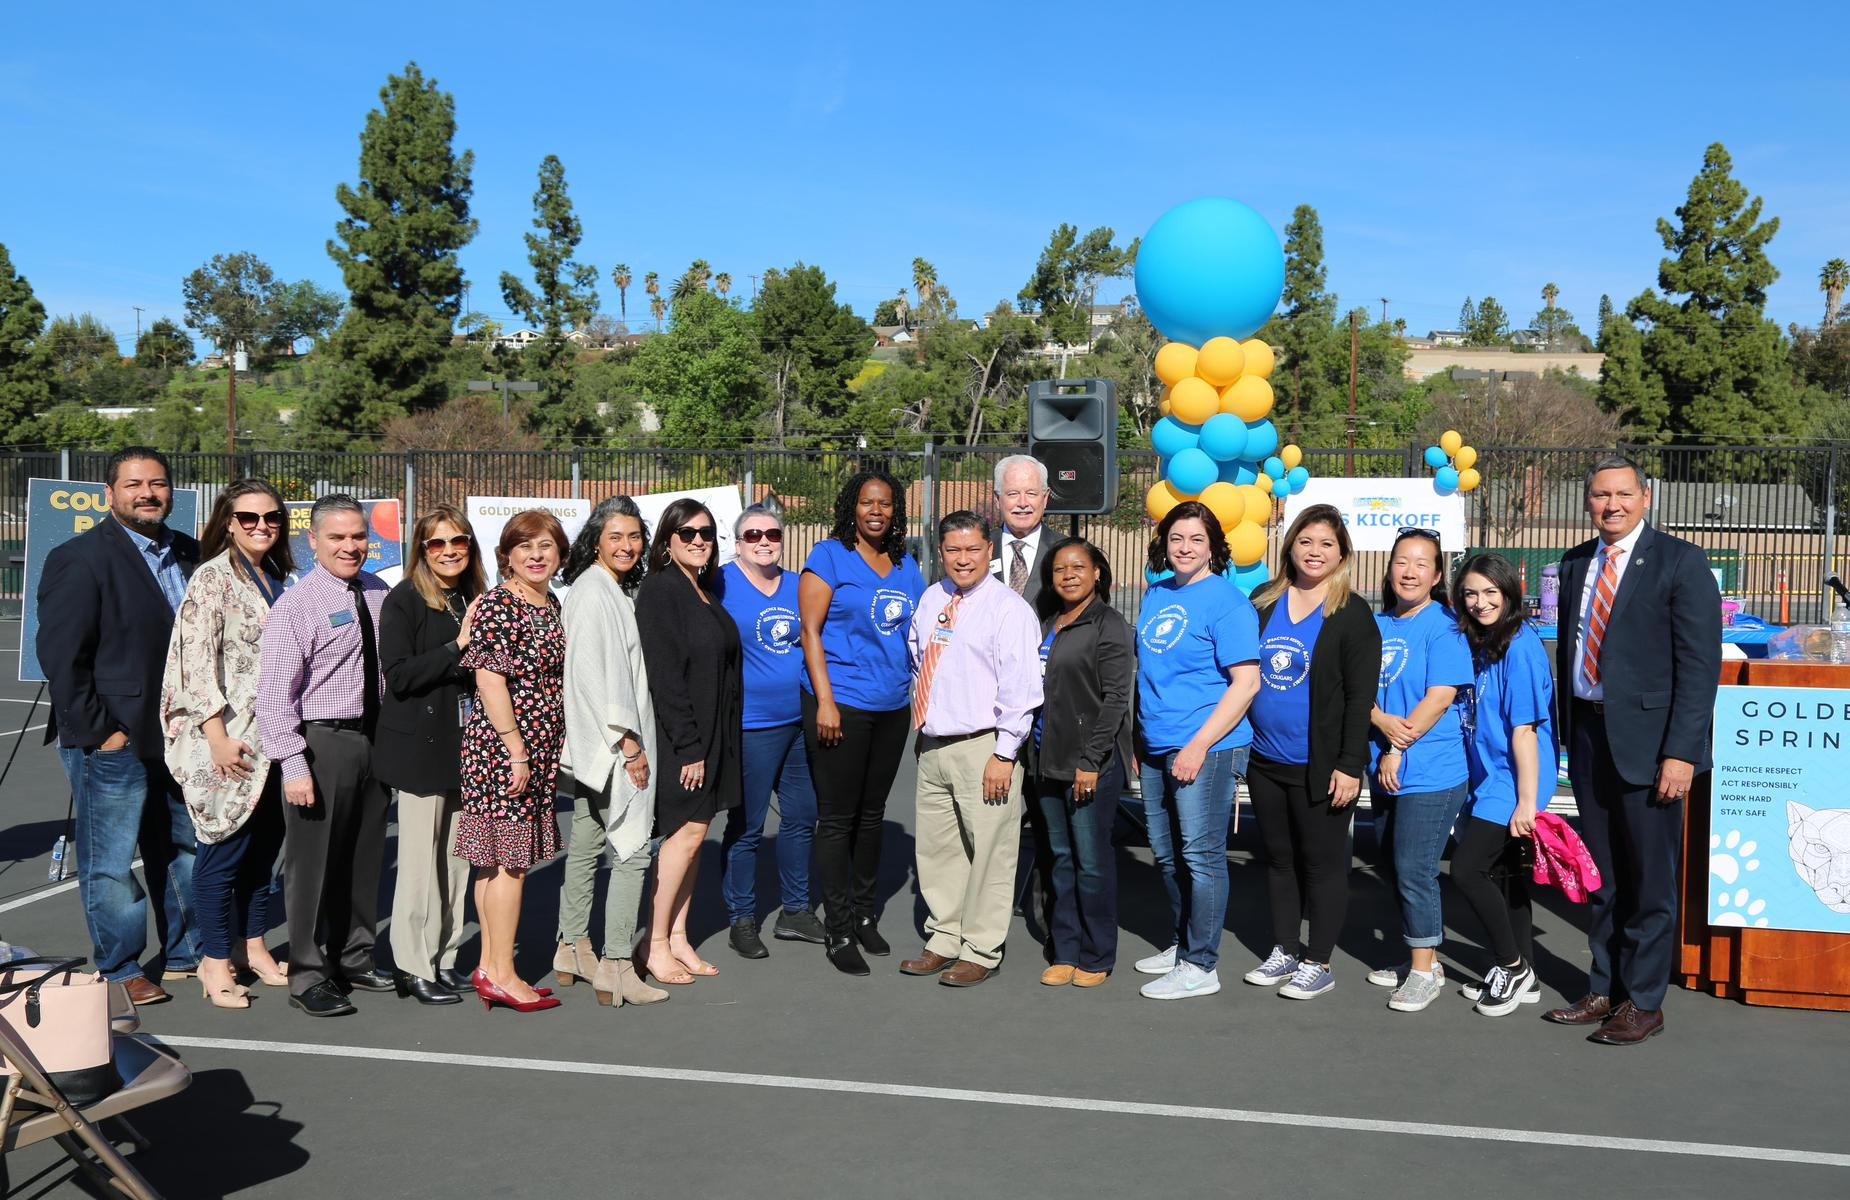 Congratulations on a great PBIS launch @GoldenSpringsPUSD Cougars! Thank you to our board members Frank Guzman, Dr. Roberta Perlman, the @CityOfPomona Mayor Tim Sandoval and @DiamondBarCity Mayor Steve Tye for joining our #PBIS LAUNCH! #proud2bepusd #PAWS #PBISinPUSD